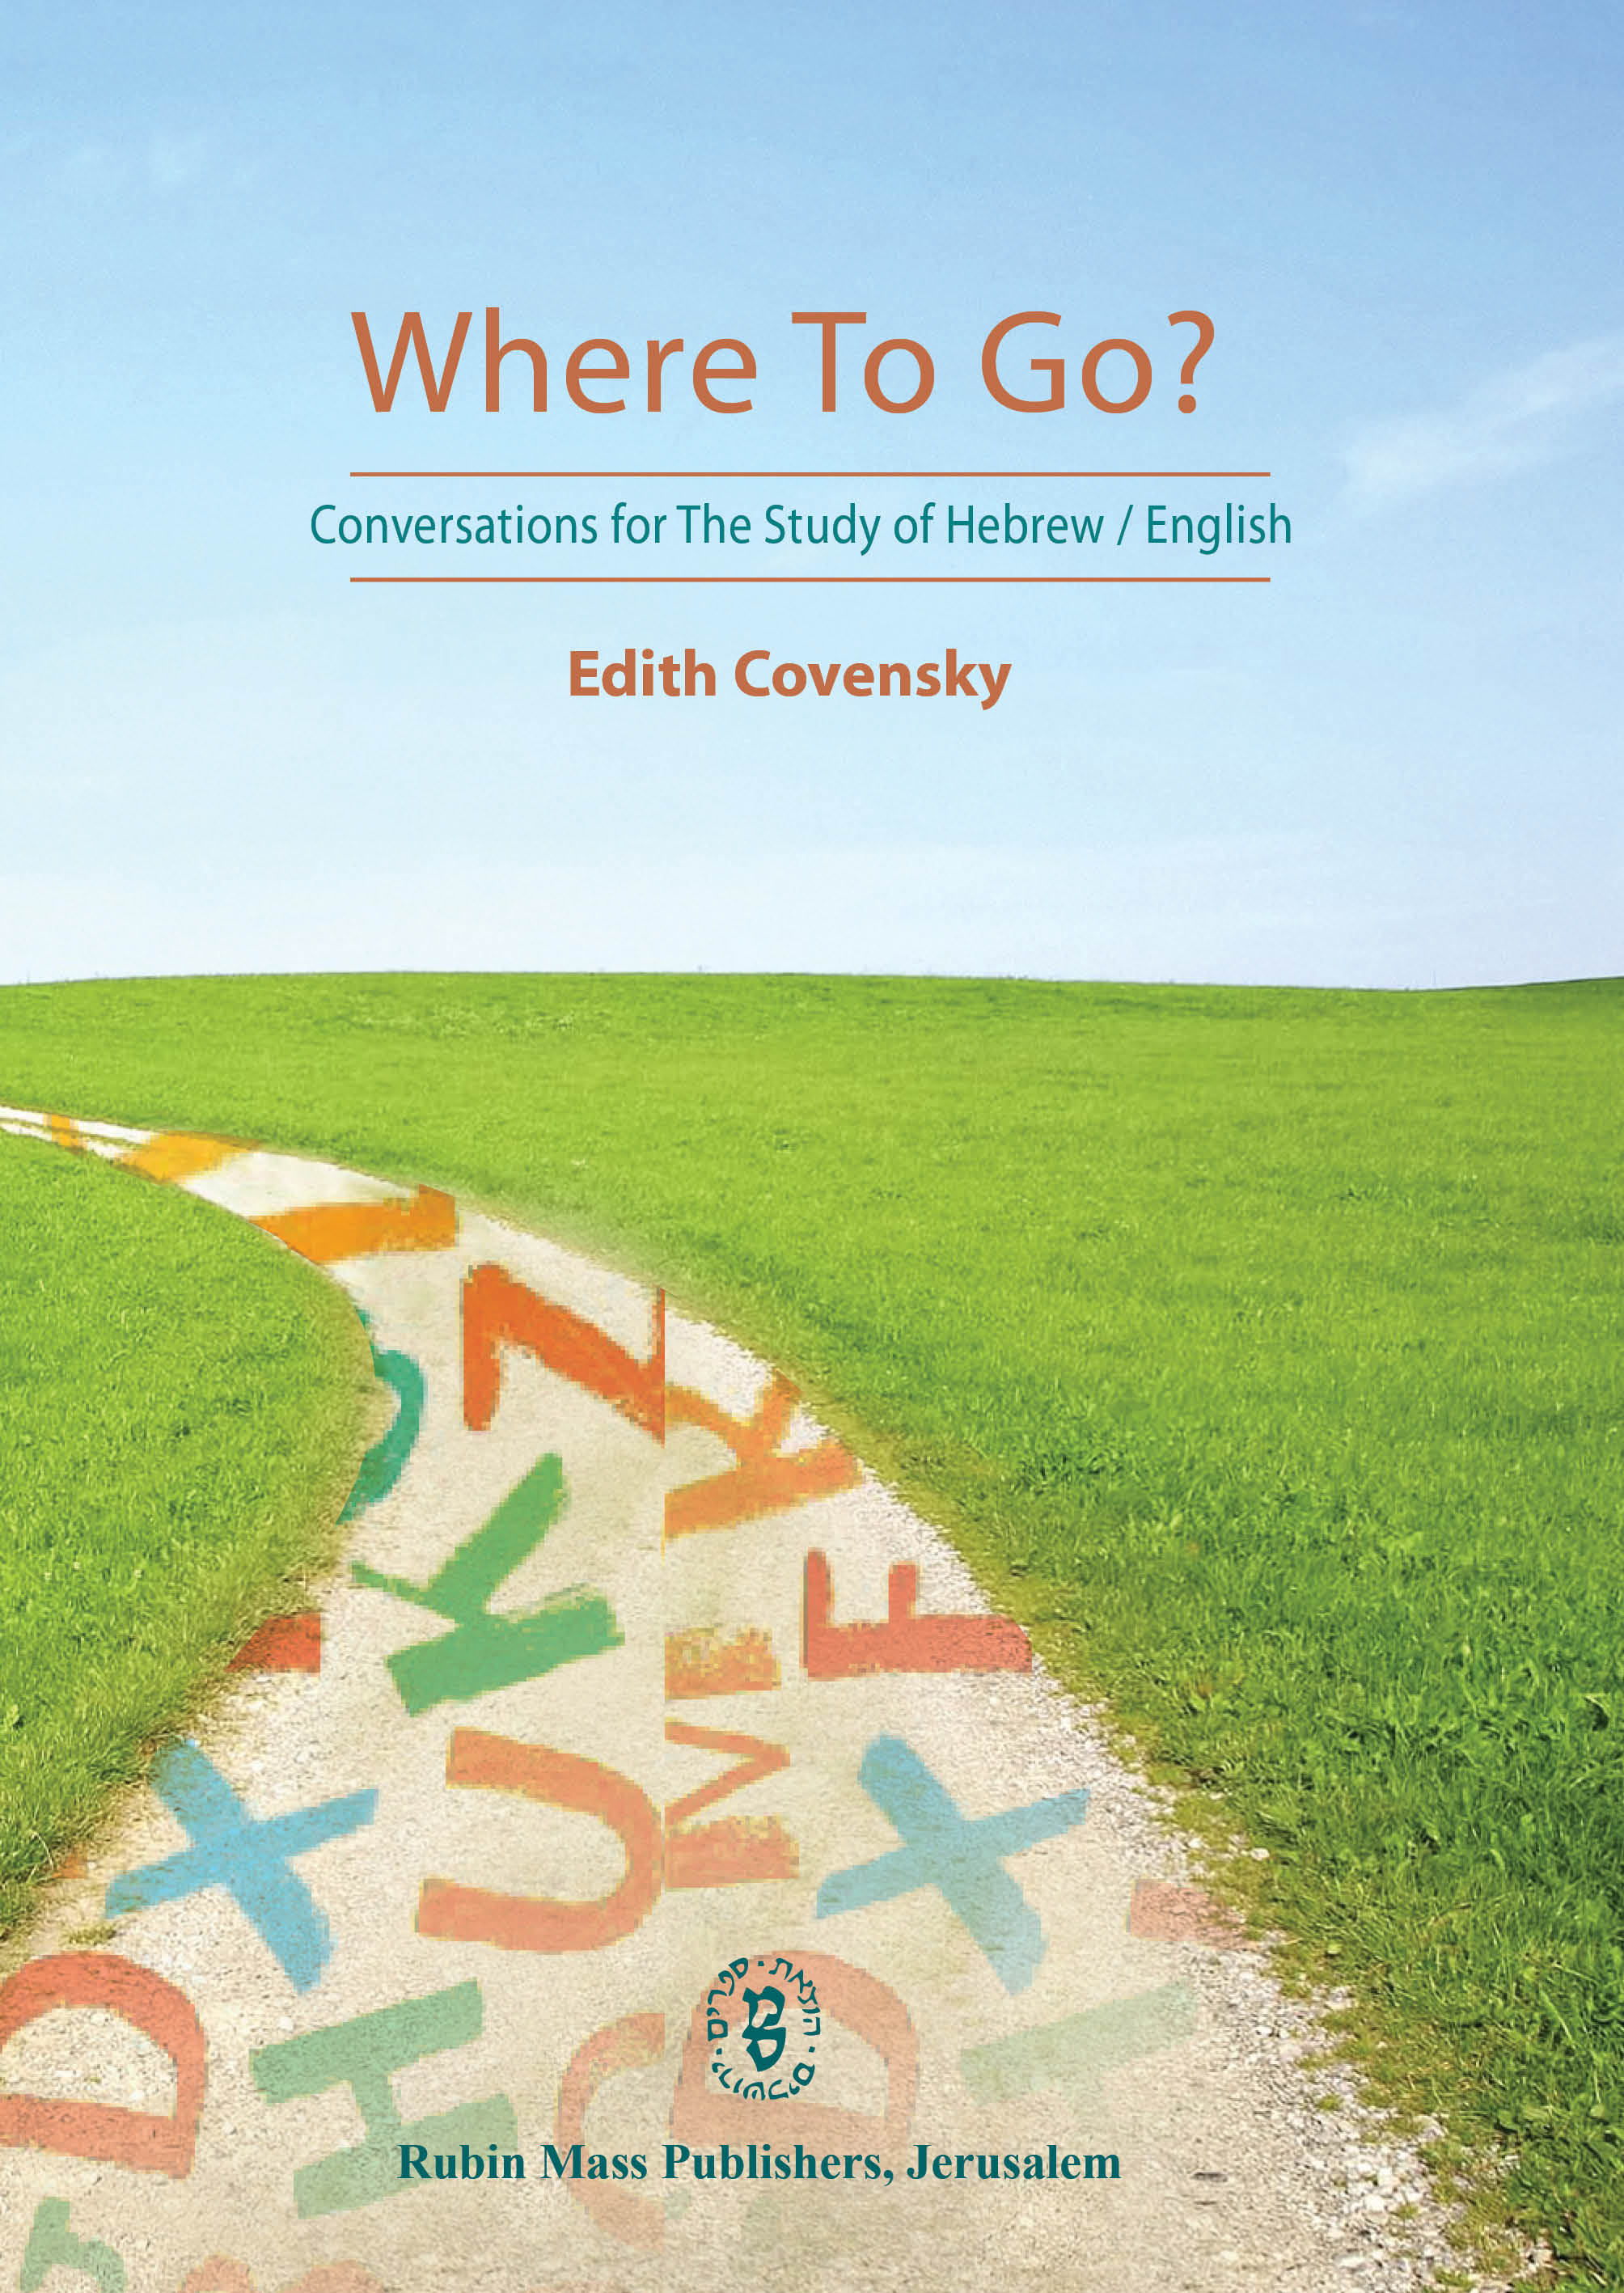 Where to Go? (English and Hebrew) / Covensky,Edith